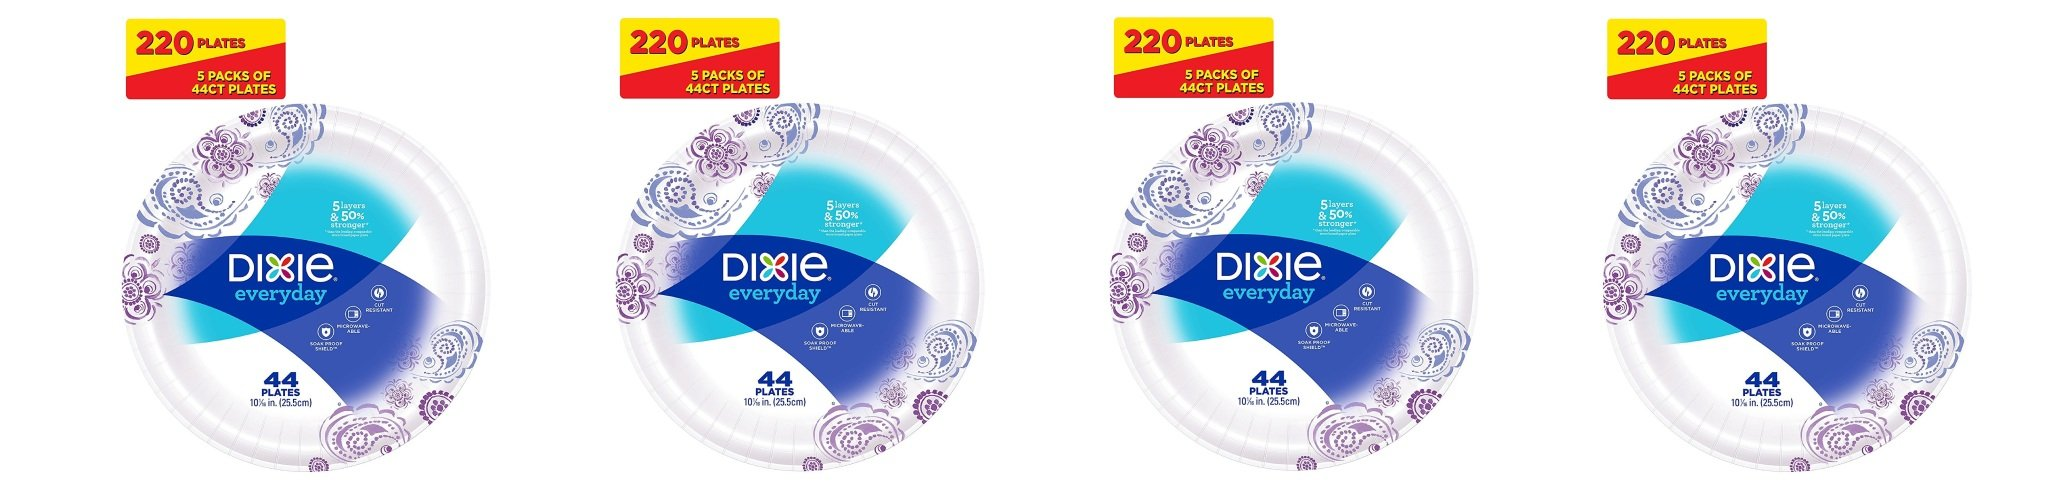 Dixie Everyday Paper Plates, 10 1/16 Inches USchWg, 4Pack of 220 Plates by Dixie